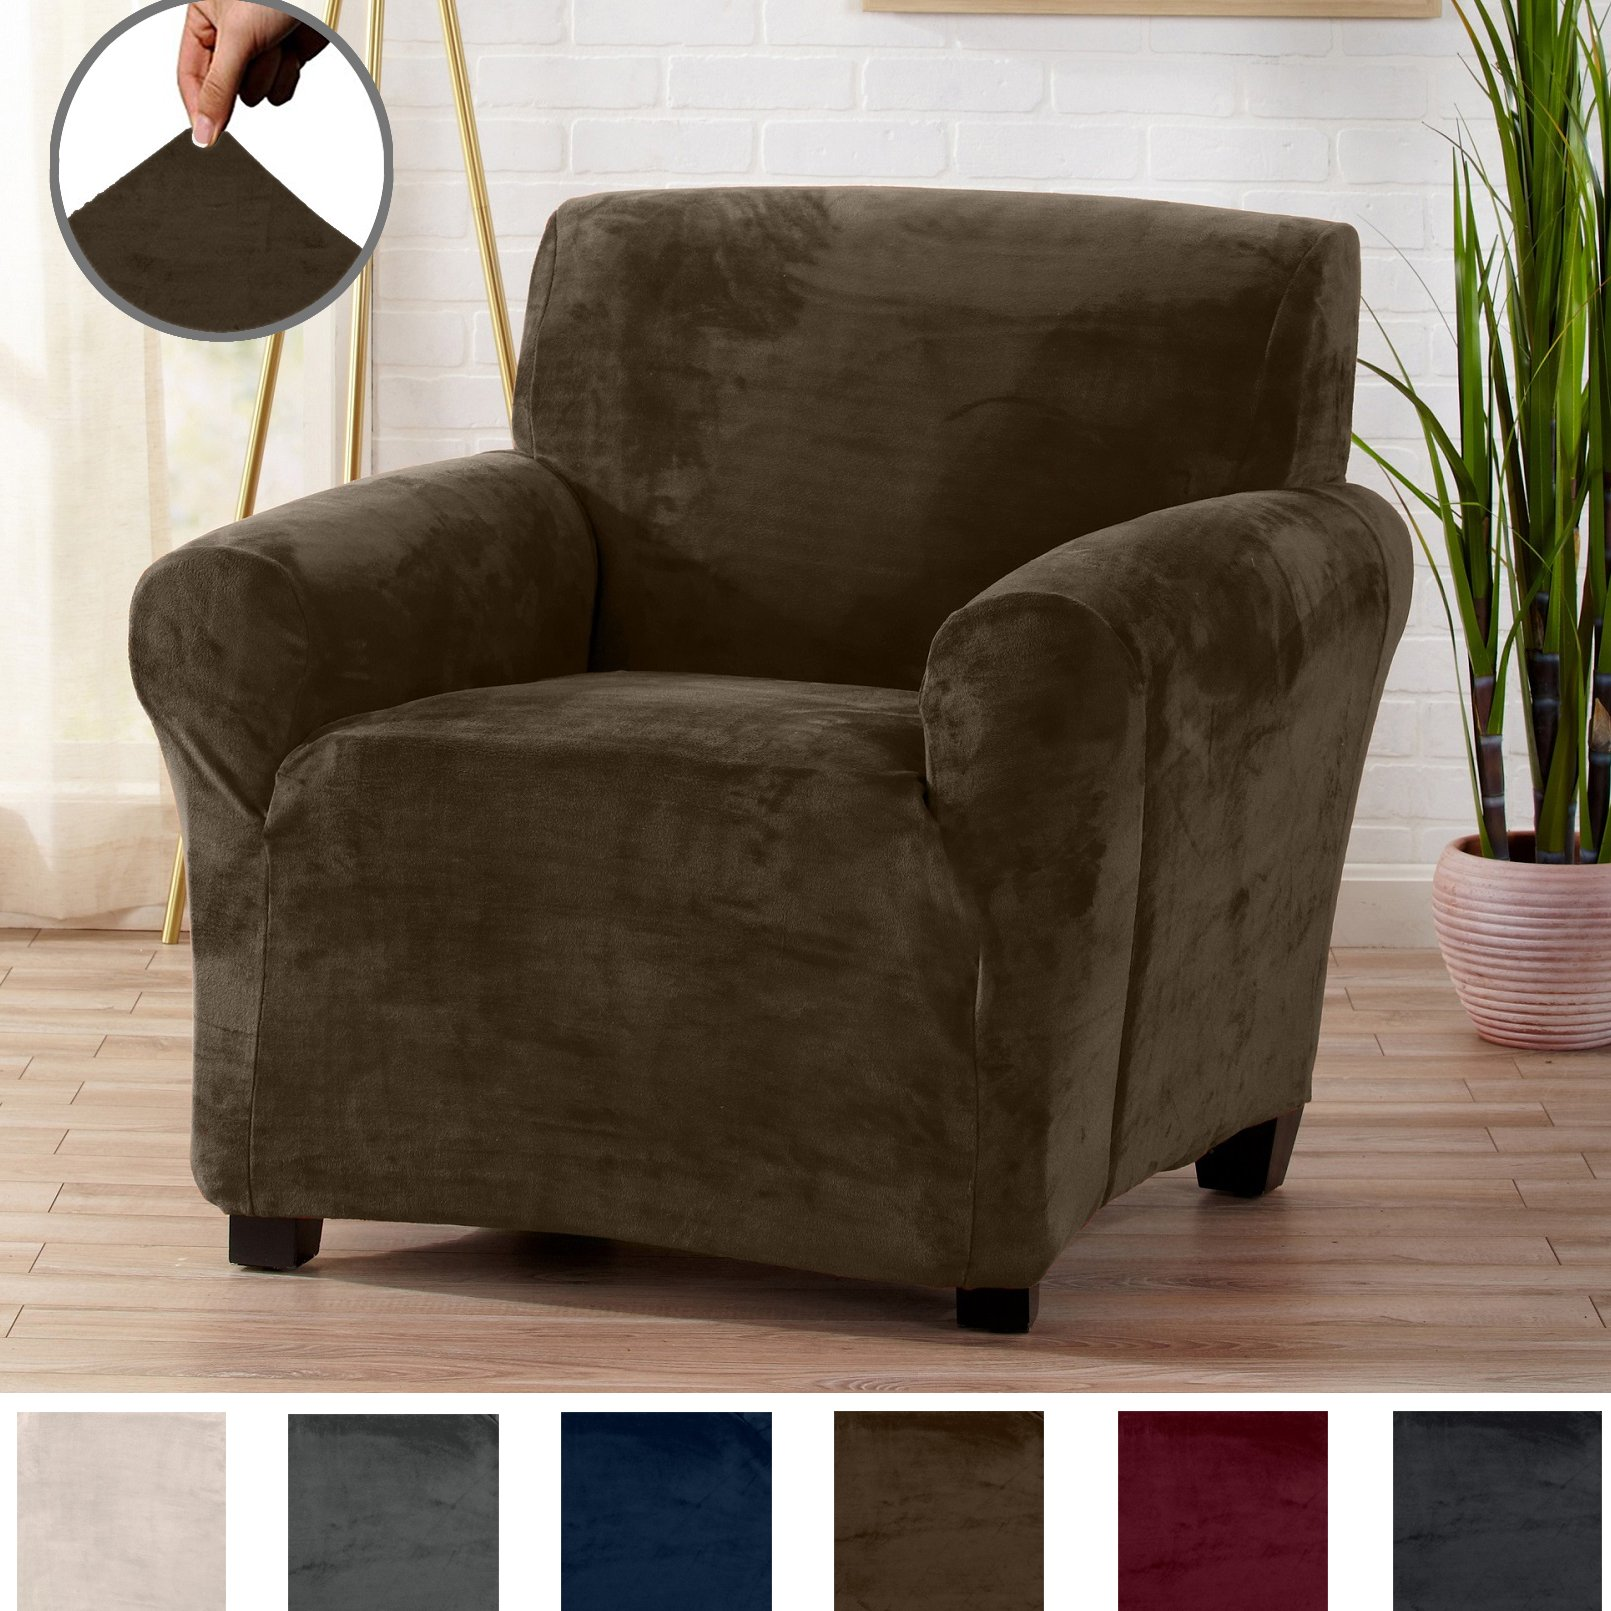 Great Bay Home Modern Velvet Plush Strapless Slipcover. Form Fit Stretch, Stylish Furniture Cover/Protector. Gale Collection by Brand. (Chair, Walnut Brown)